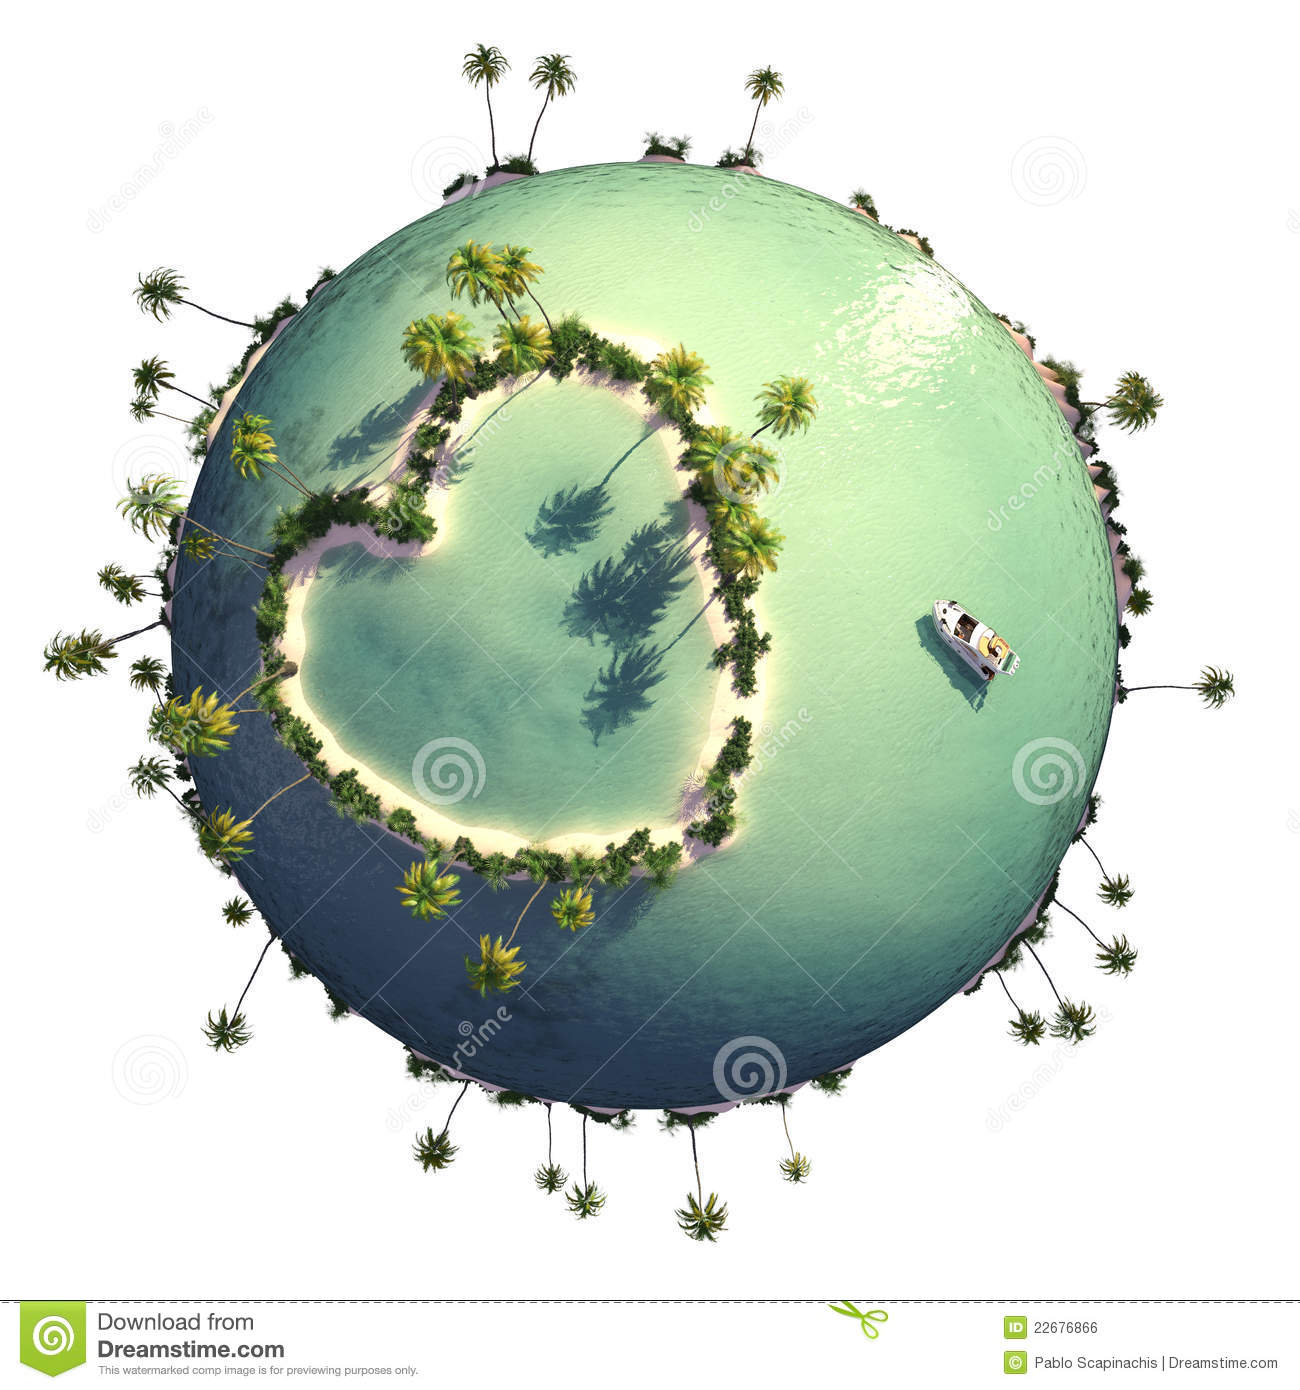 ... With Heart Shaped Island Royalty Free Stock Image - Image: 22676866